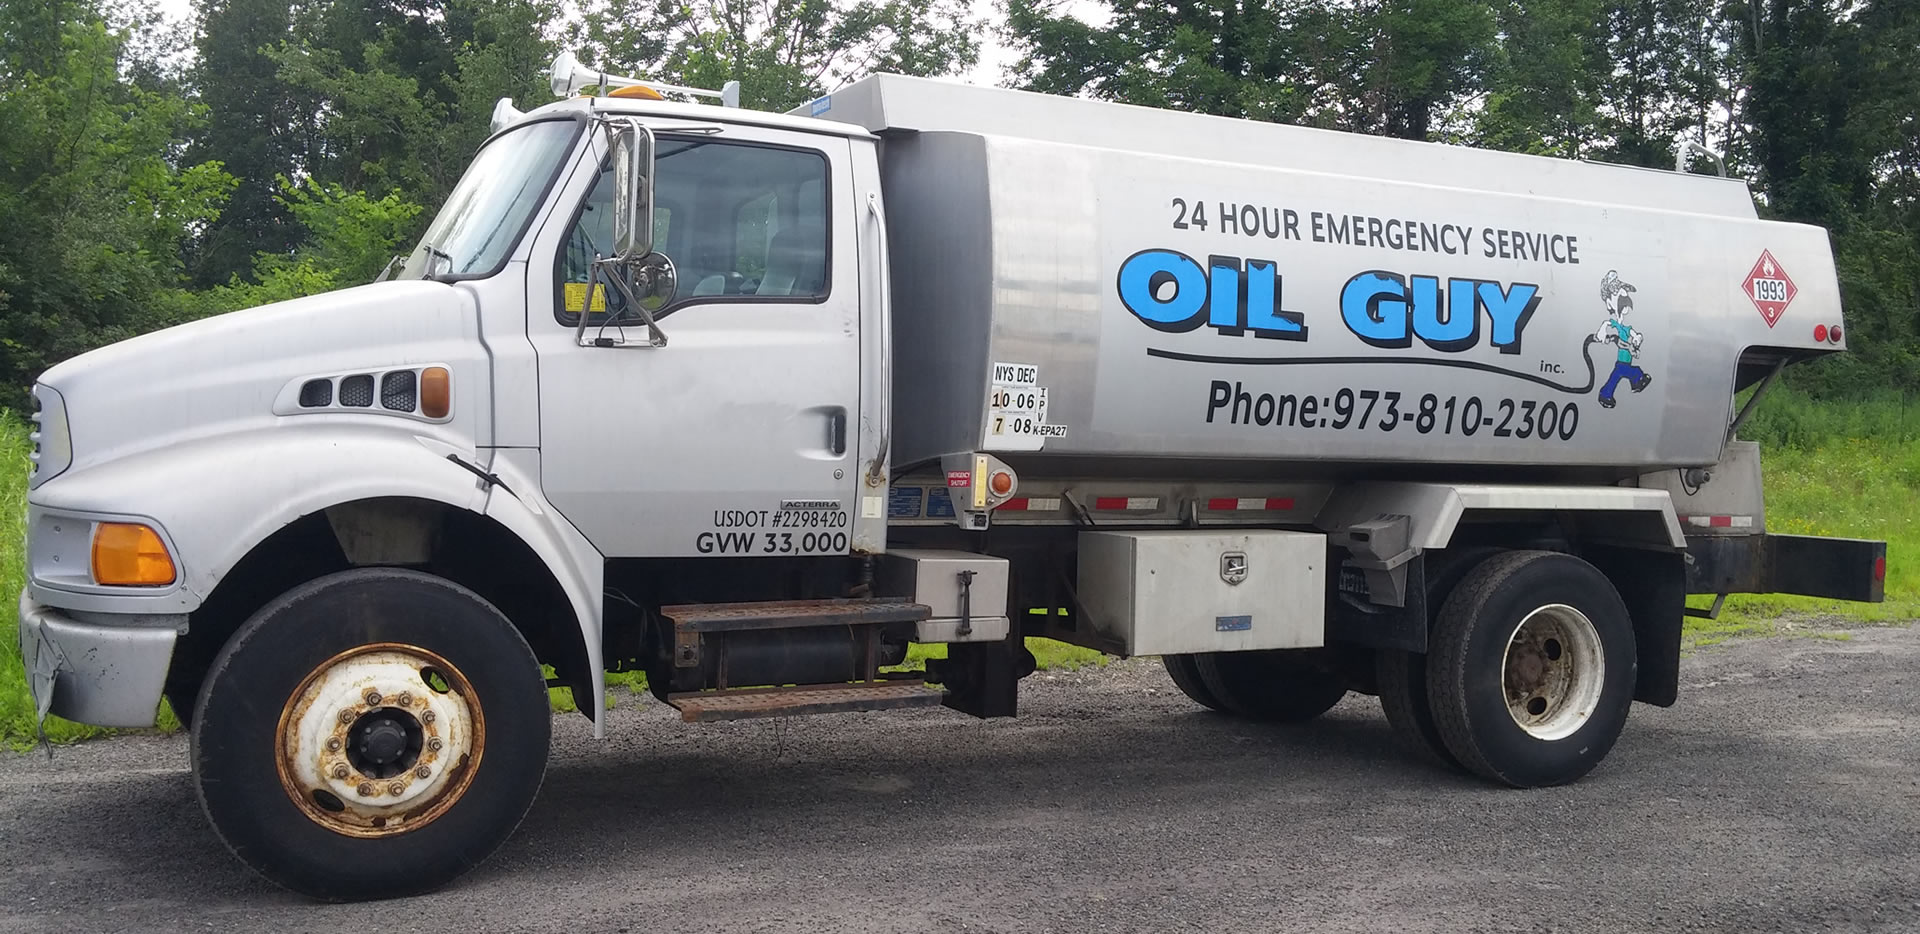 Oil Guy slide